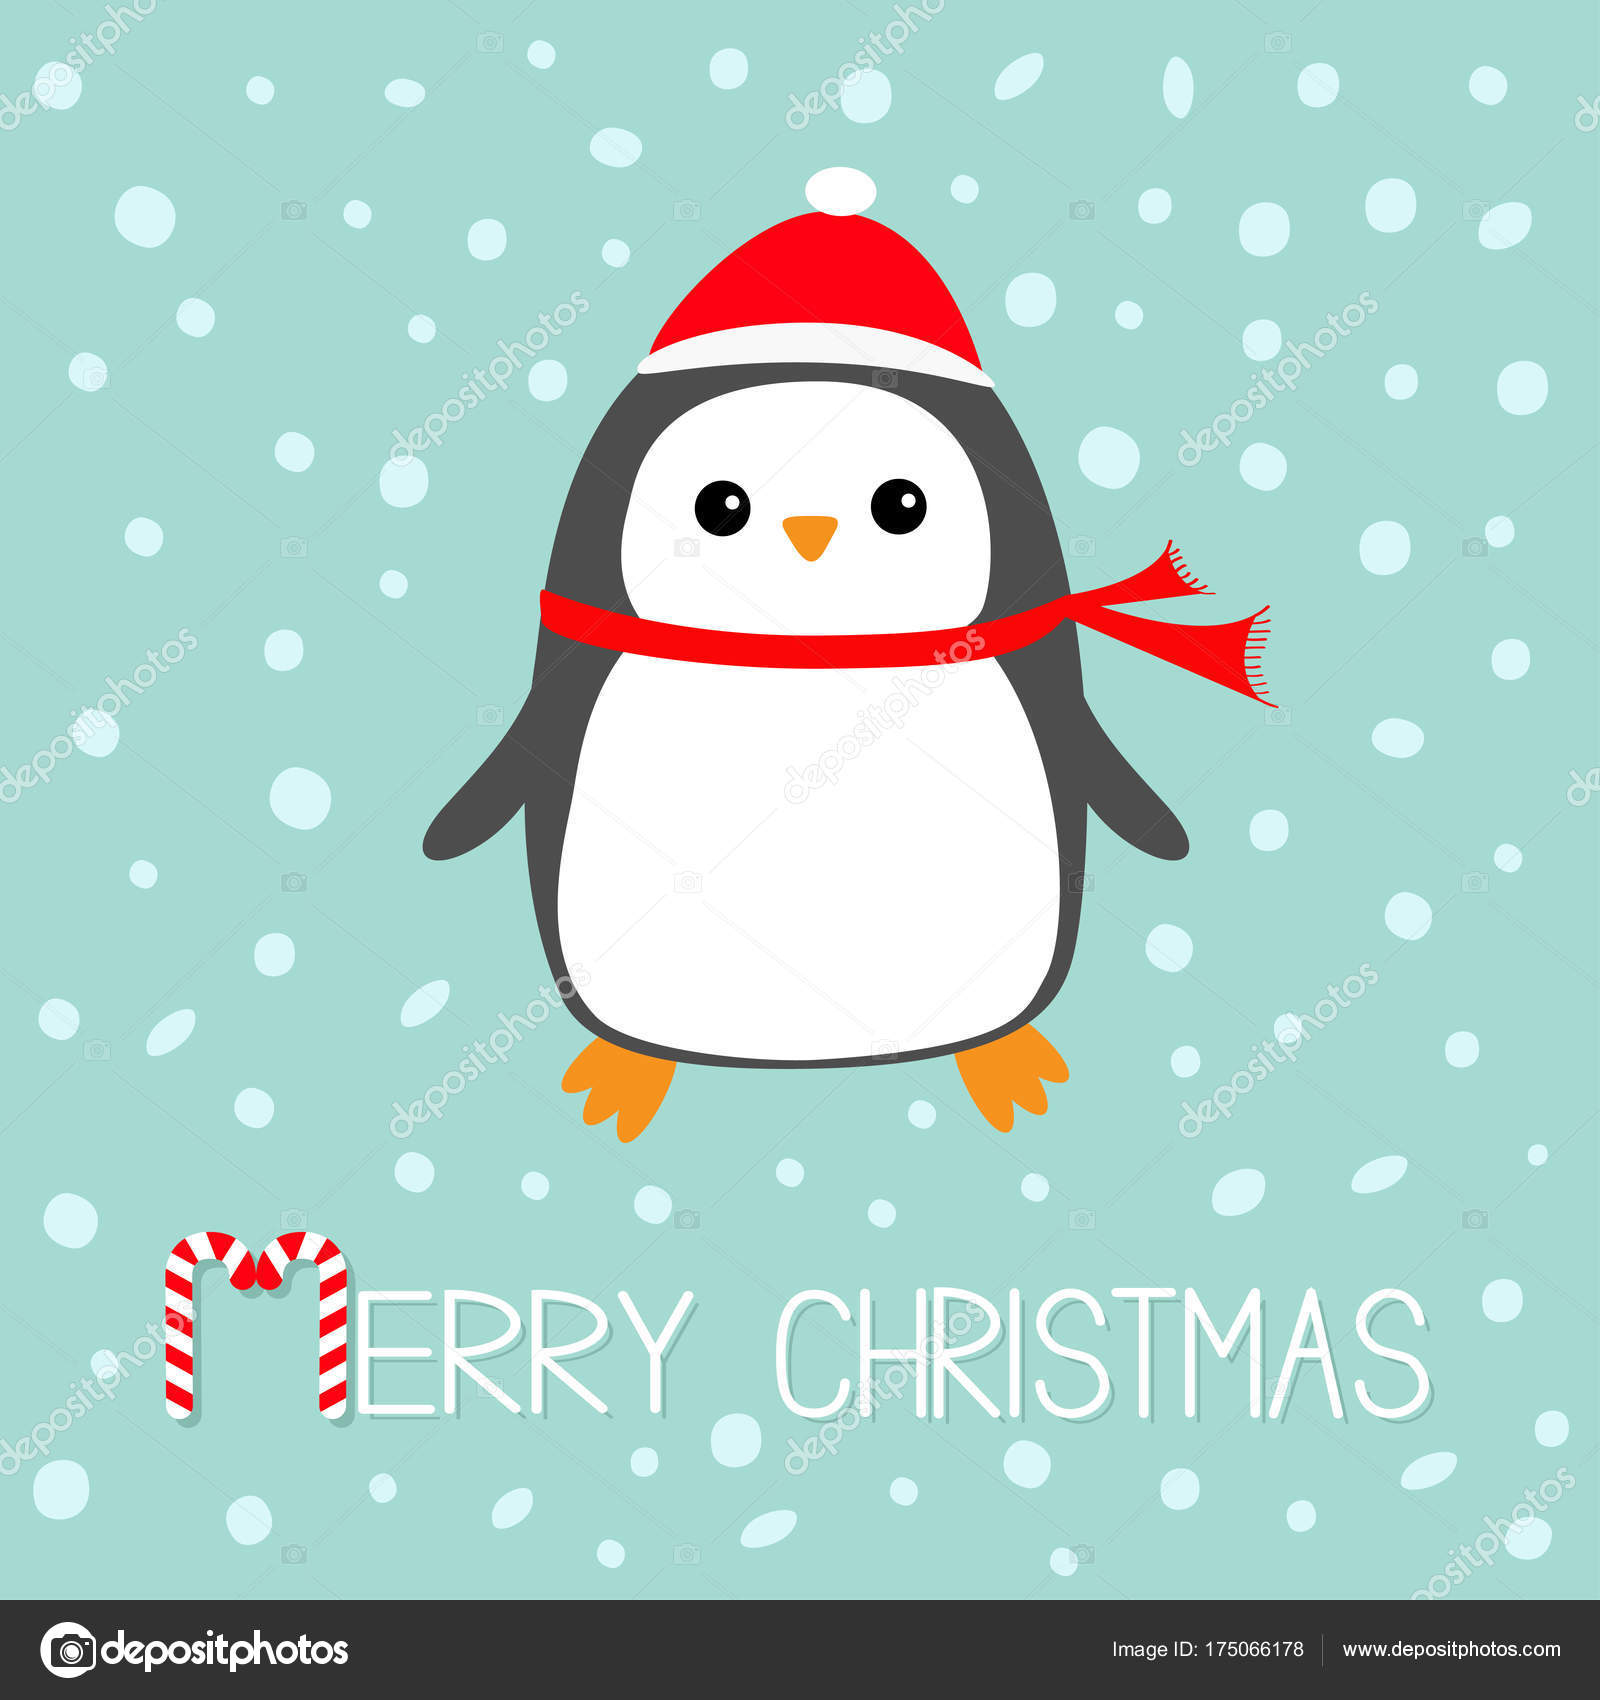 a51ddef8ab59a Merry Christmas Candy canes text. Kawaii Penguin bird. Red Santa Claus hat